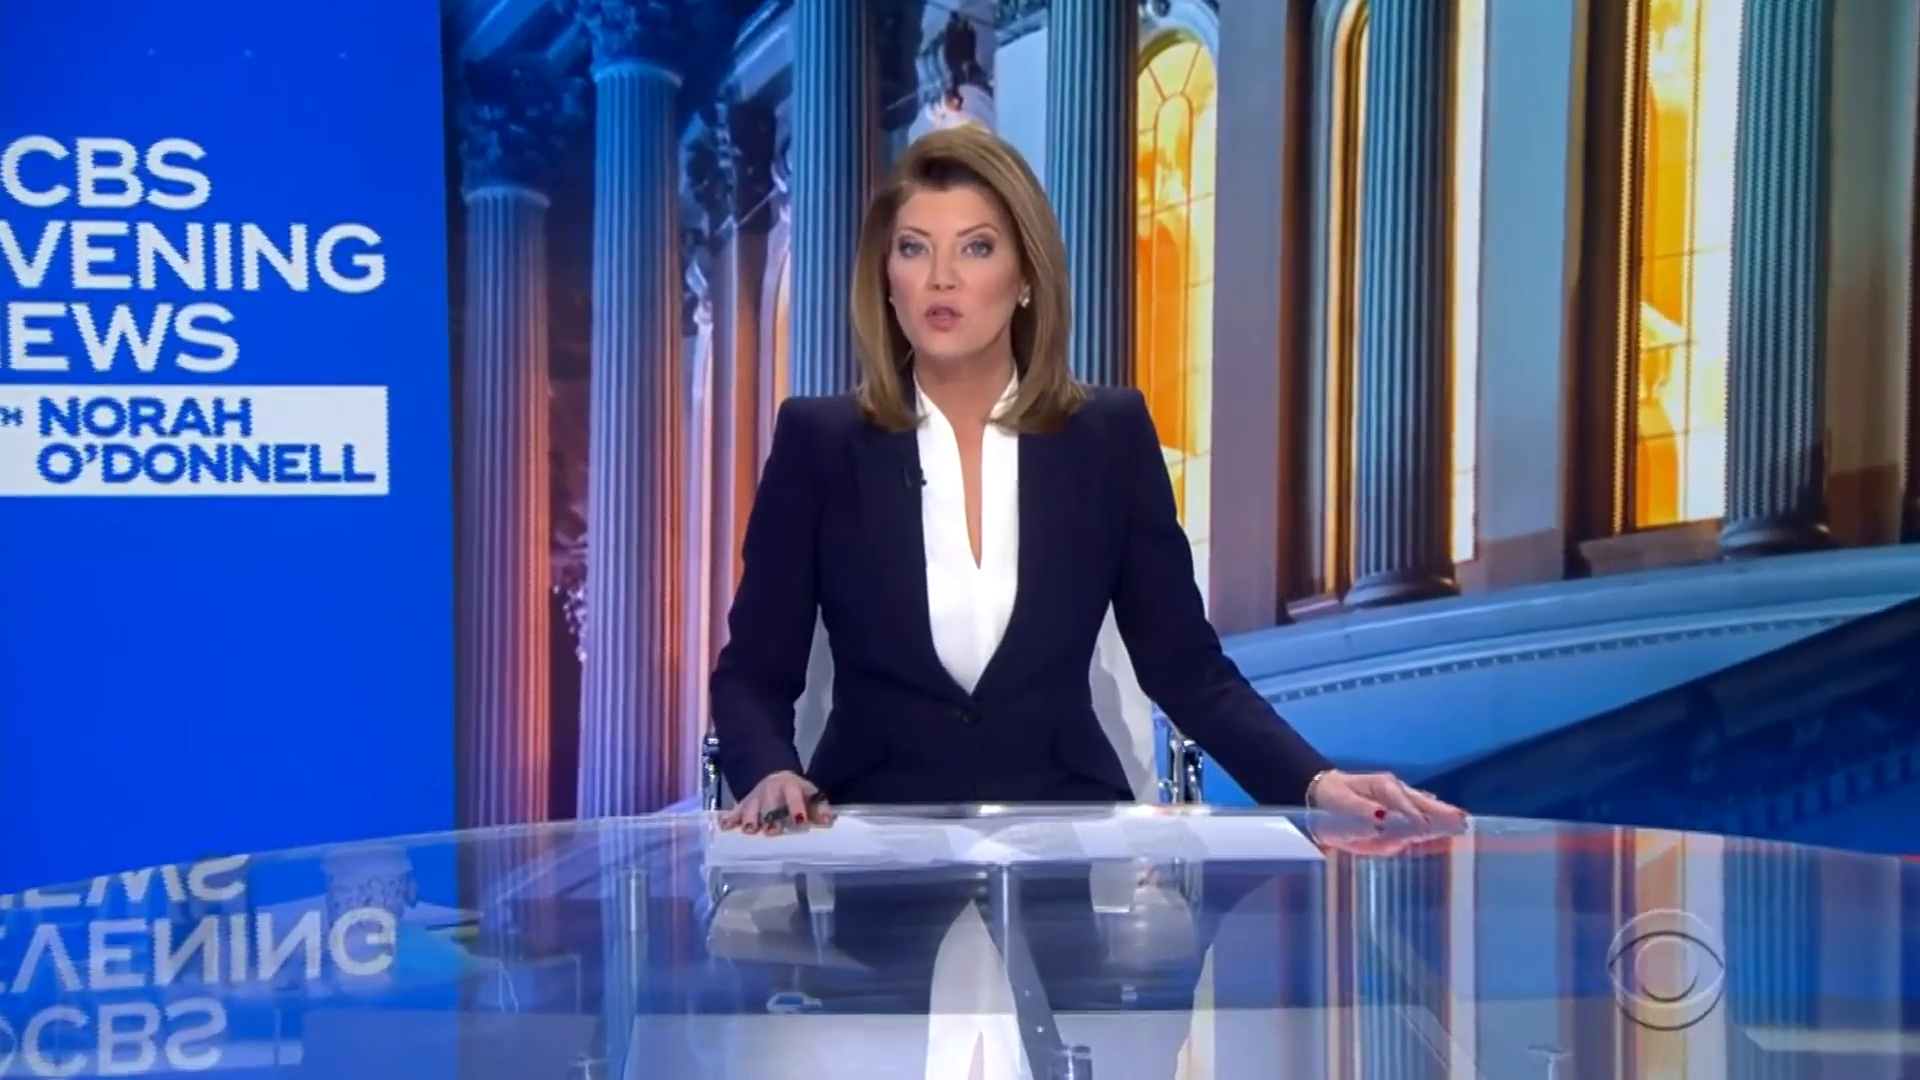 Ex-cuomo Aide Details Governor's Alleged Sexual Harassment